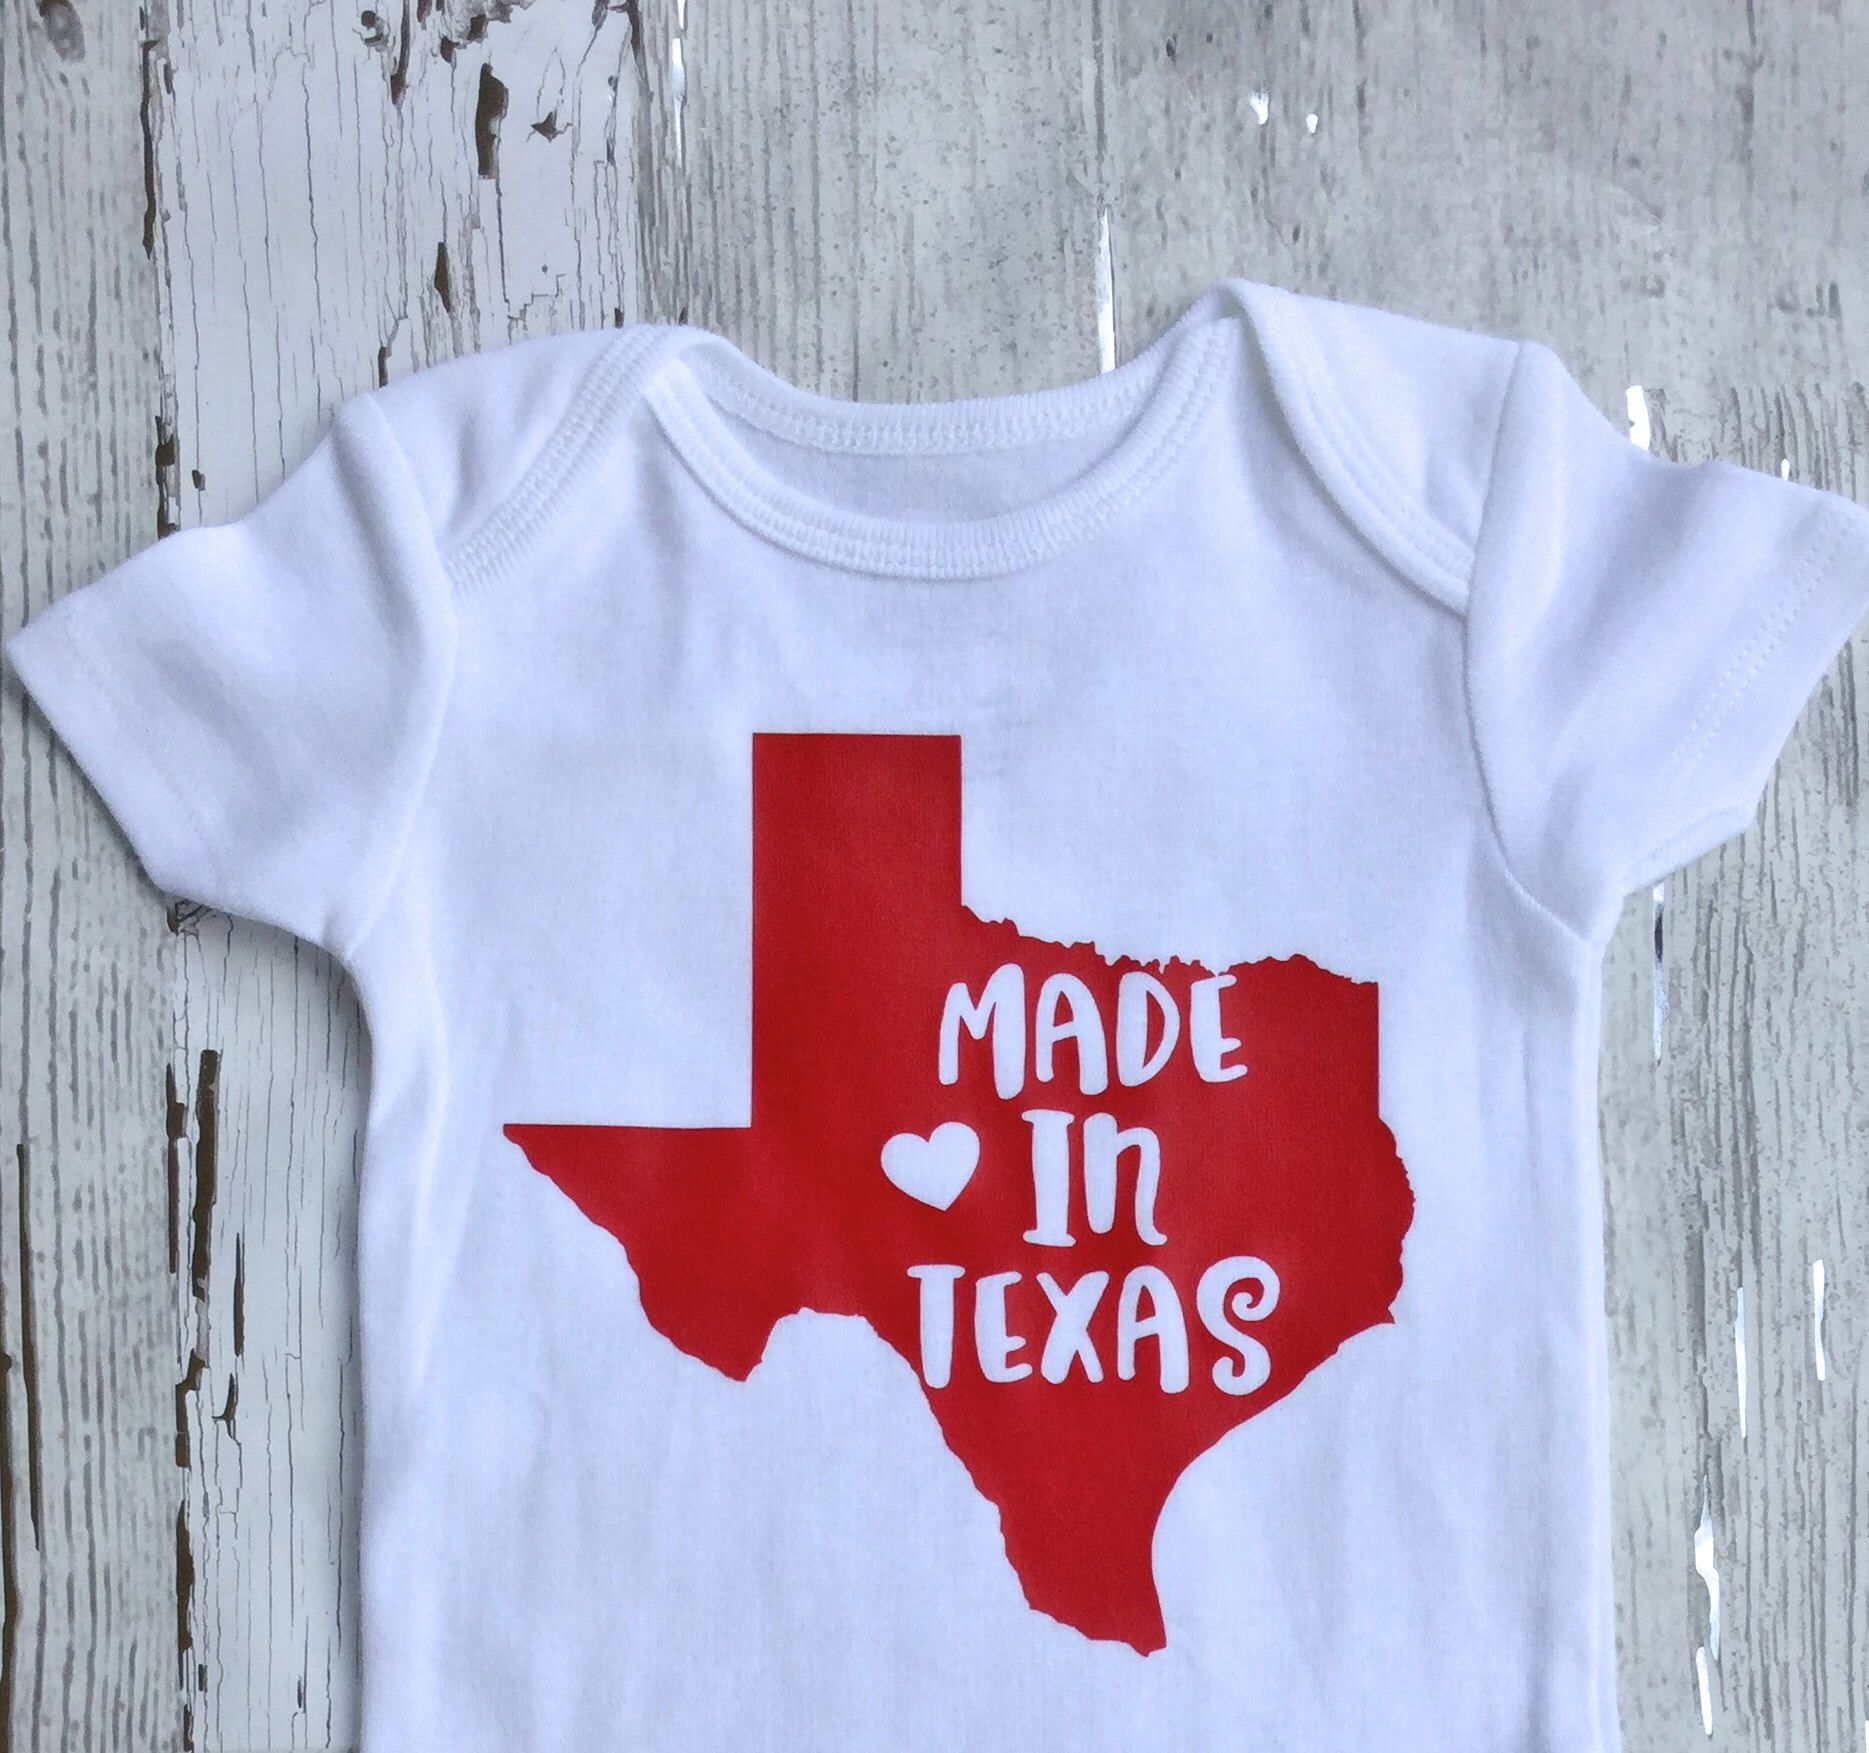 0d09e4f8a Texas Baby Made in Texas  Gender Neutral Baby Shower Gift  Baby ...